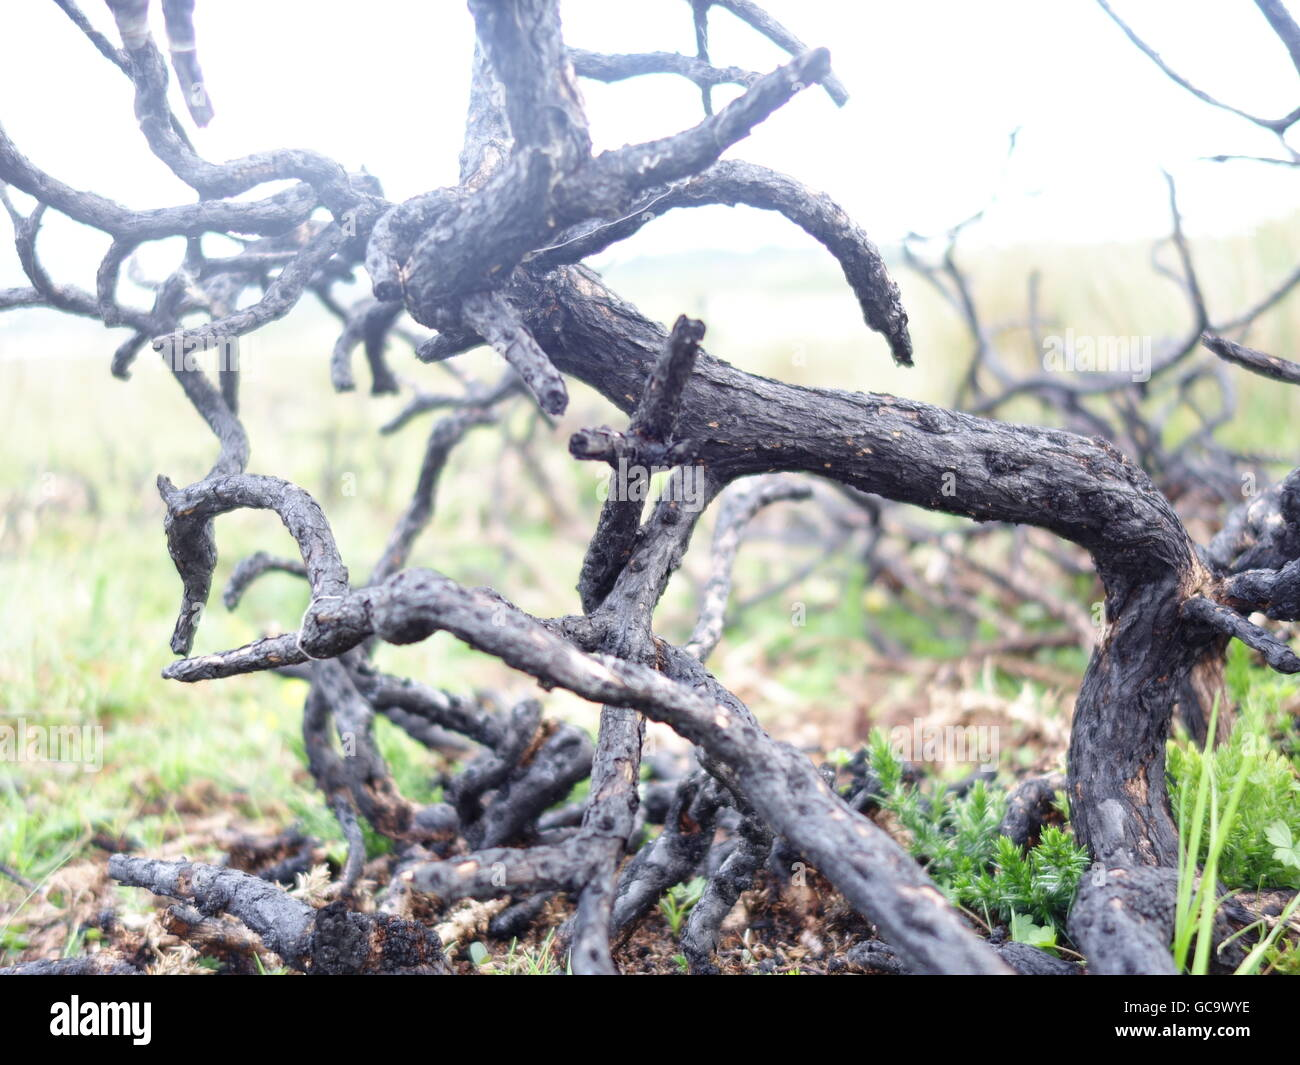 Unusual dead plants twisting and turning - Stock Image